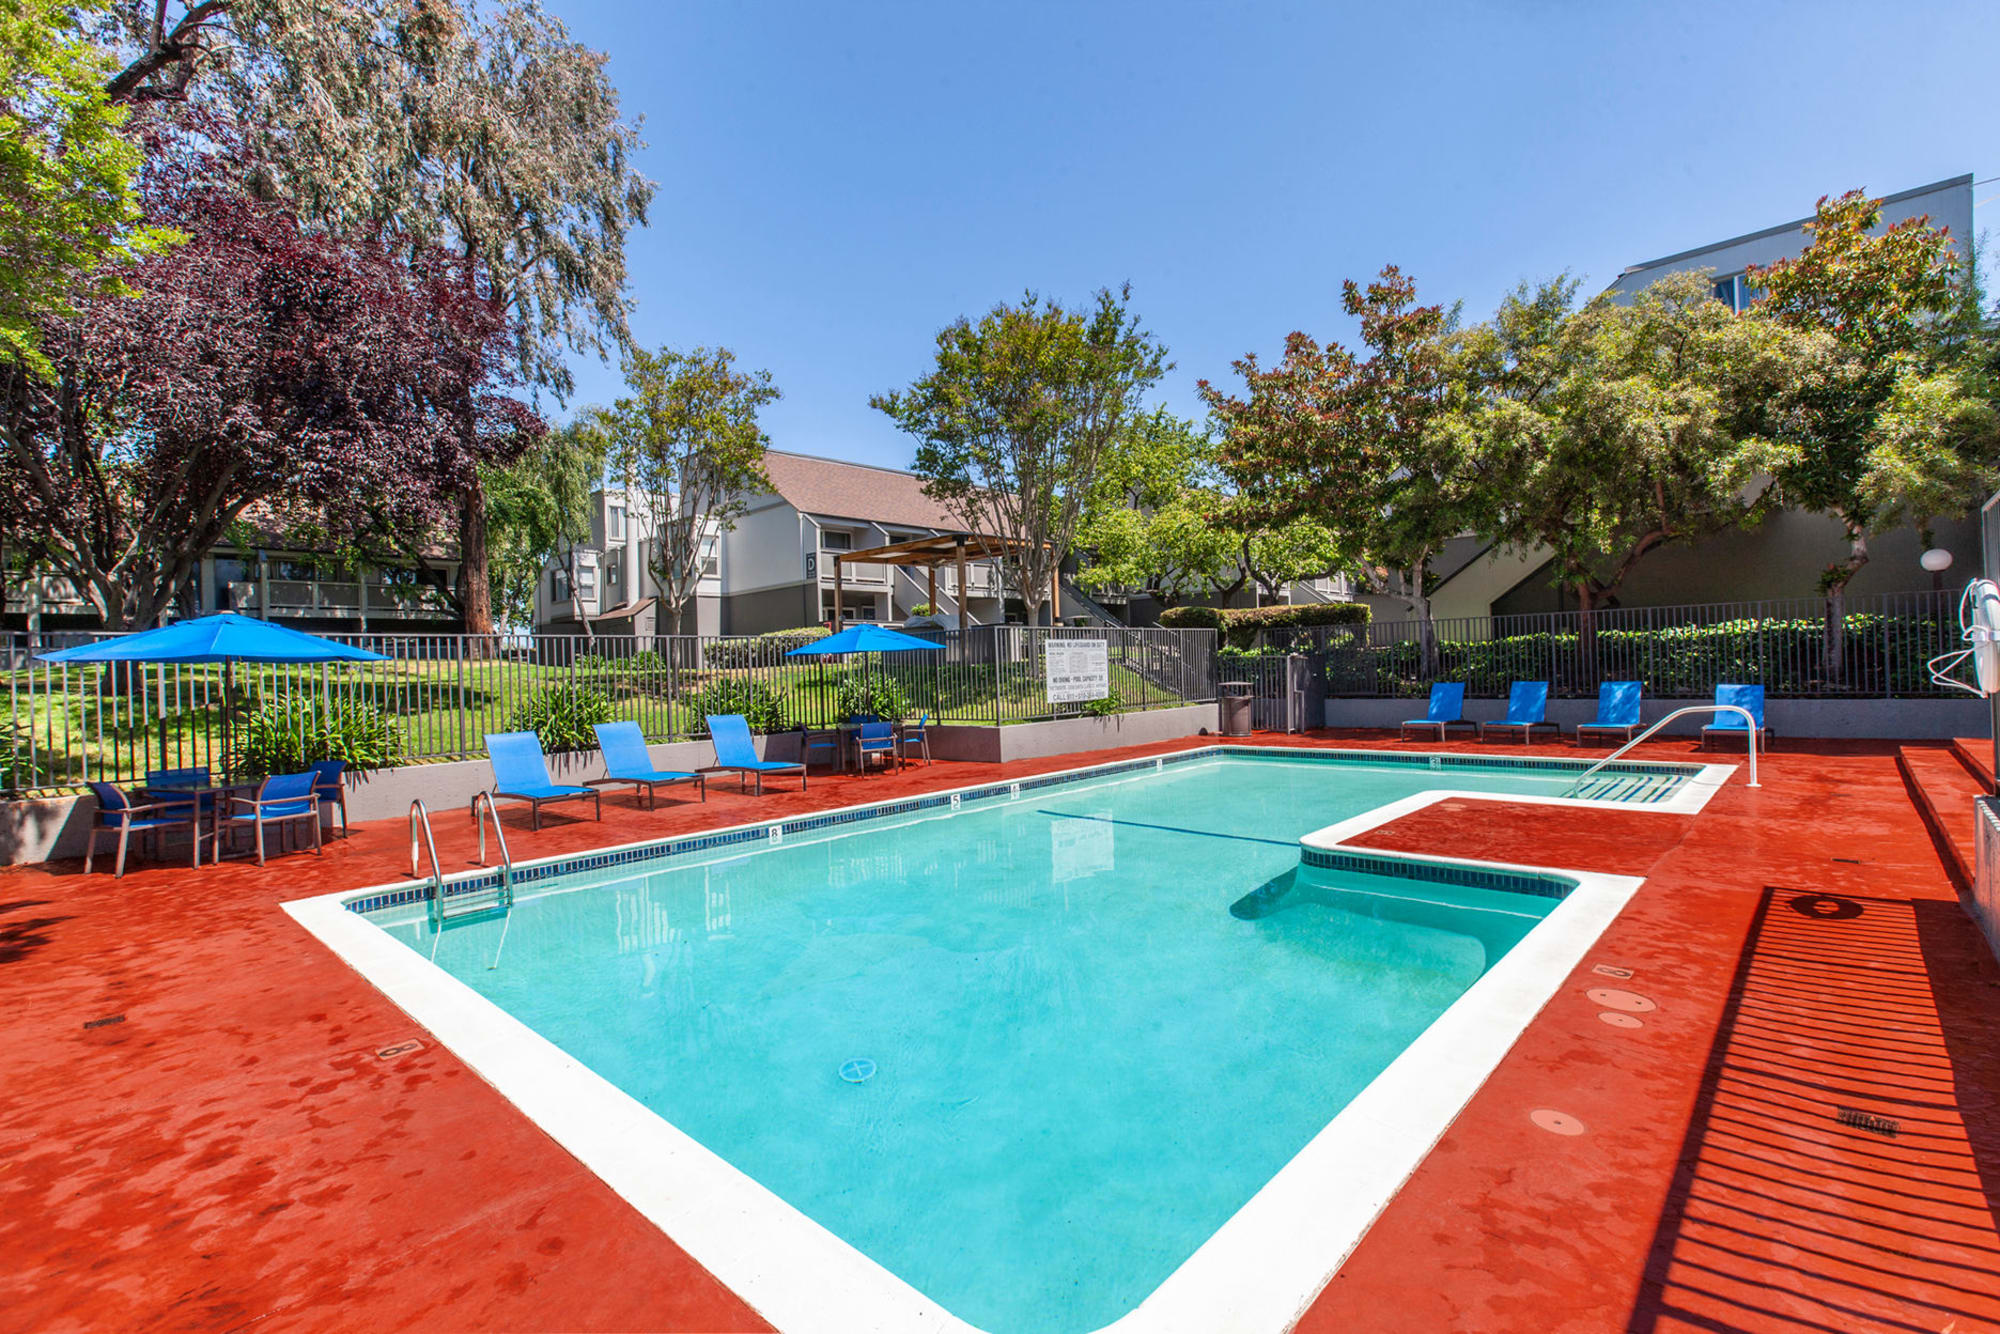 Pool at The Timbers Apartments in Hayward, CA